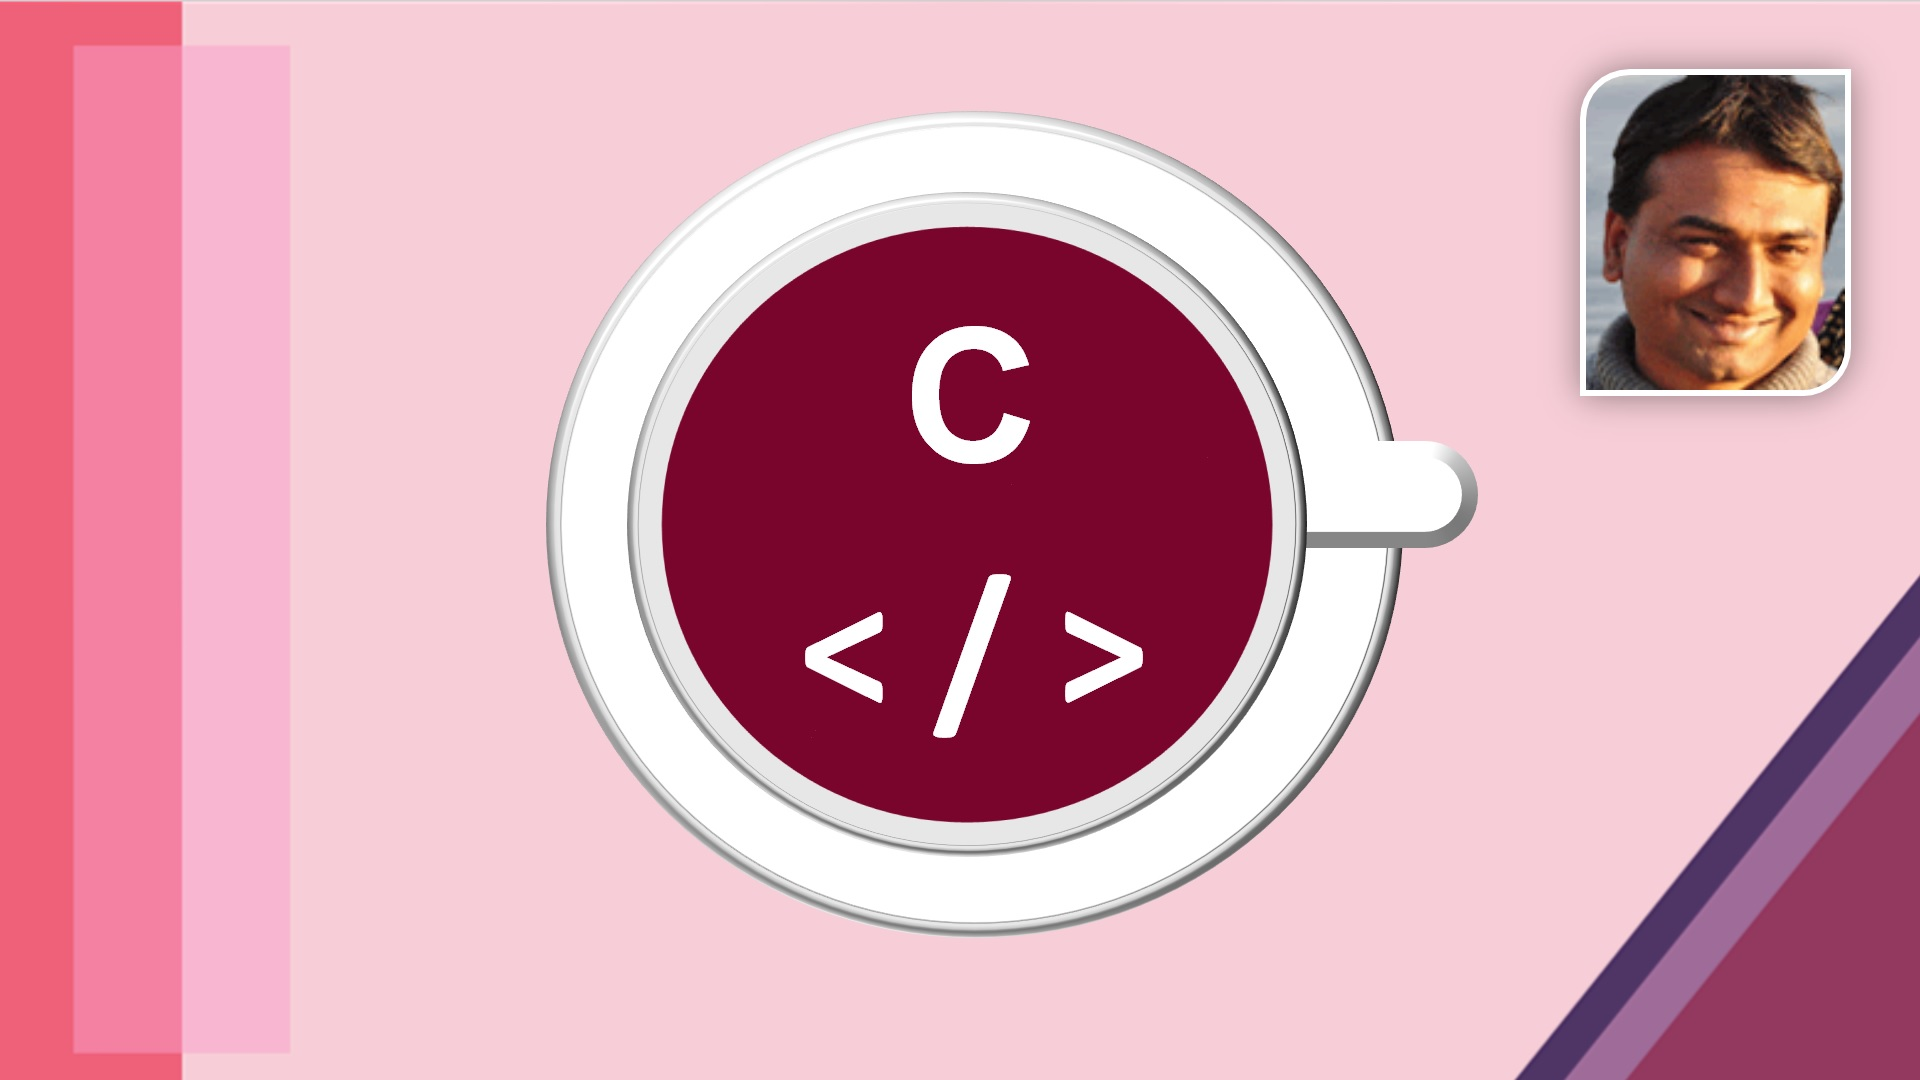 C to Master Skill: Learn C Programming Technique